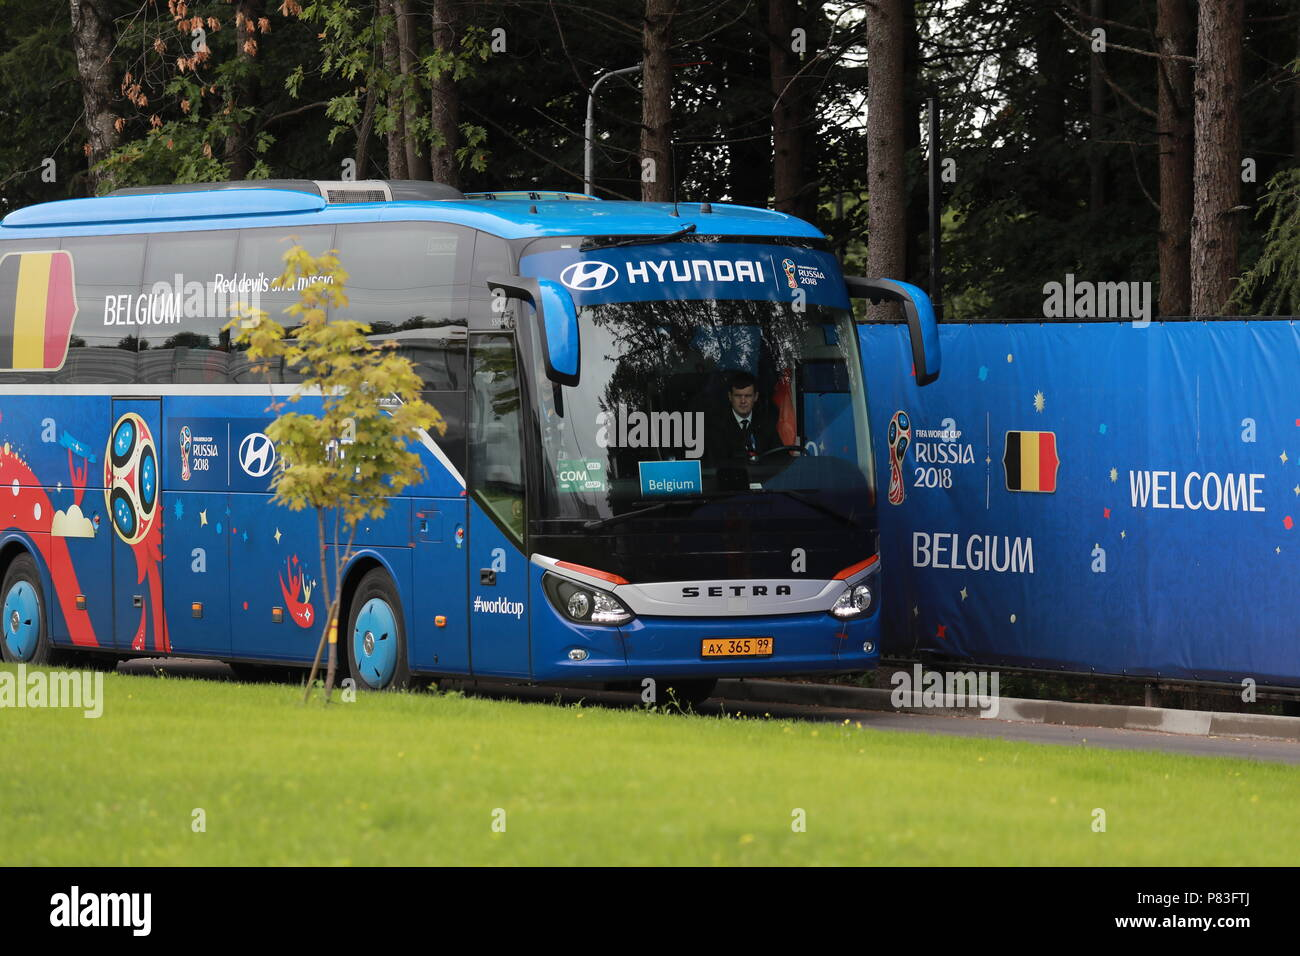 502227d59 MOSCOW REGION, RUSSIA - JULY 9, 2018: A bus of the Belgian men's national  ...